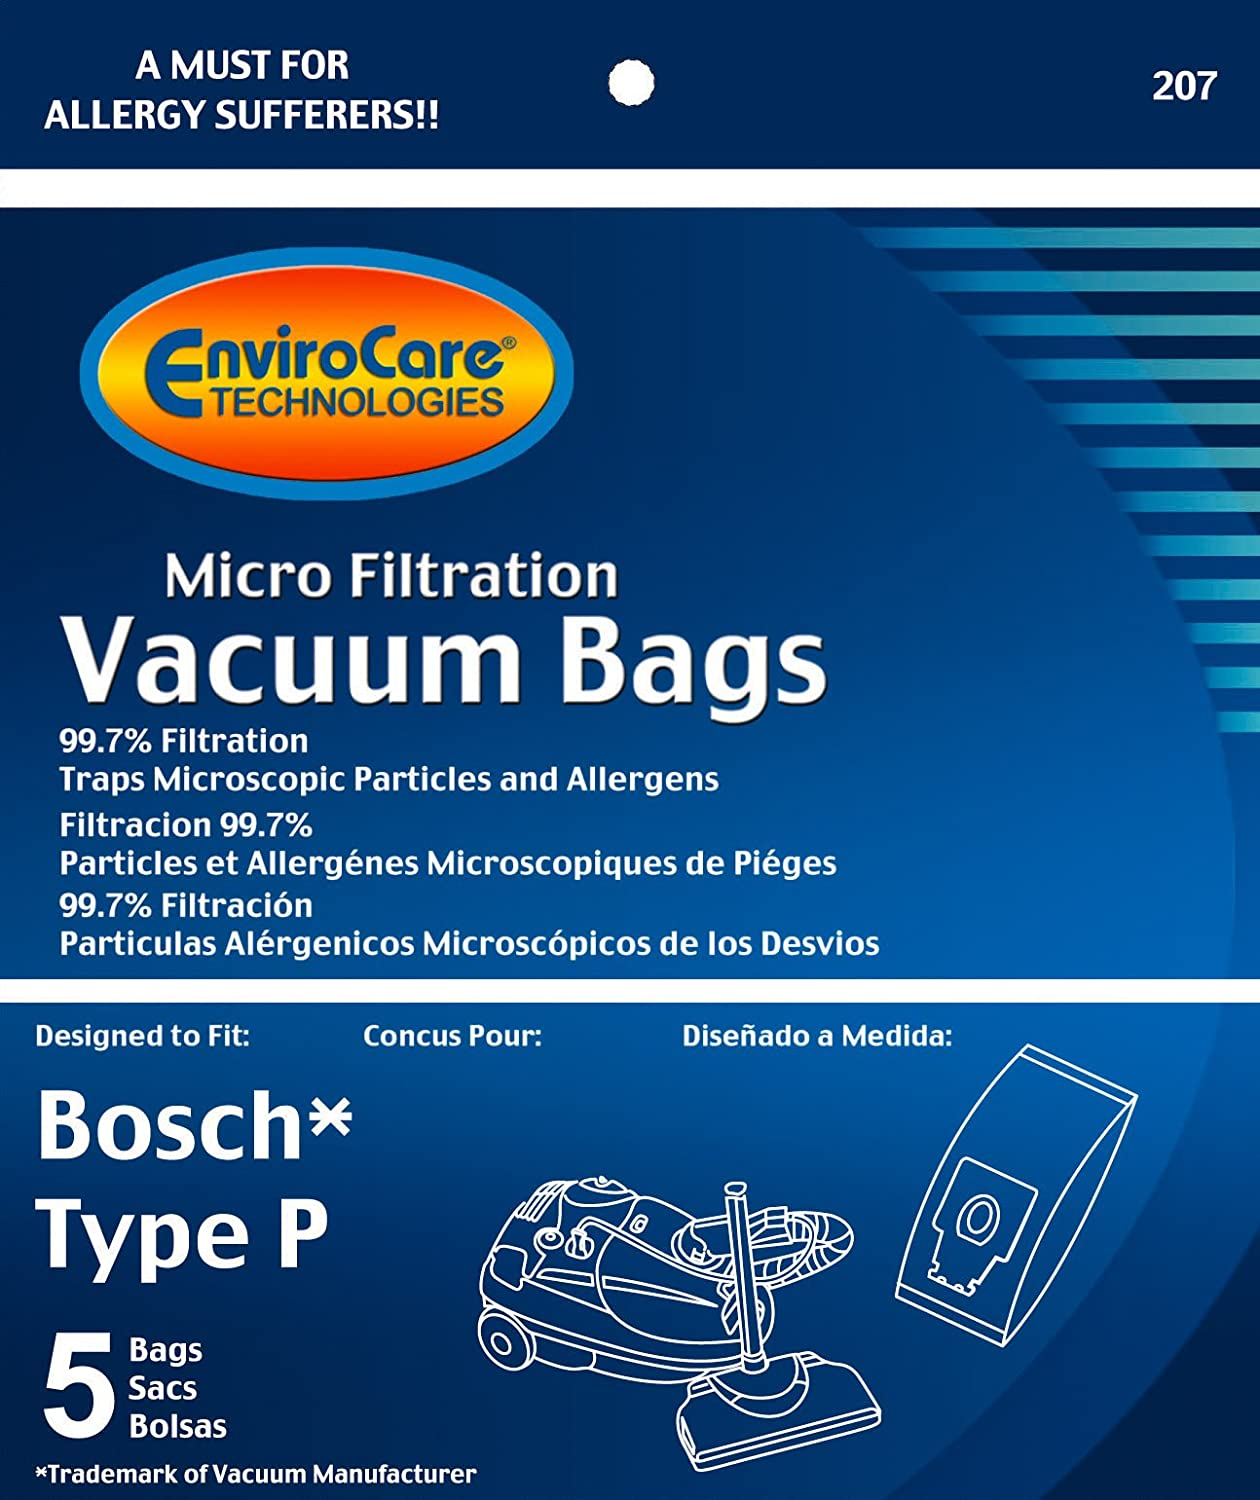 EnviroCare Replacement Micro Filtration Vacuum Bags for Bosch Type P Canisters 5 pack